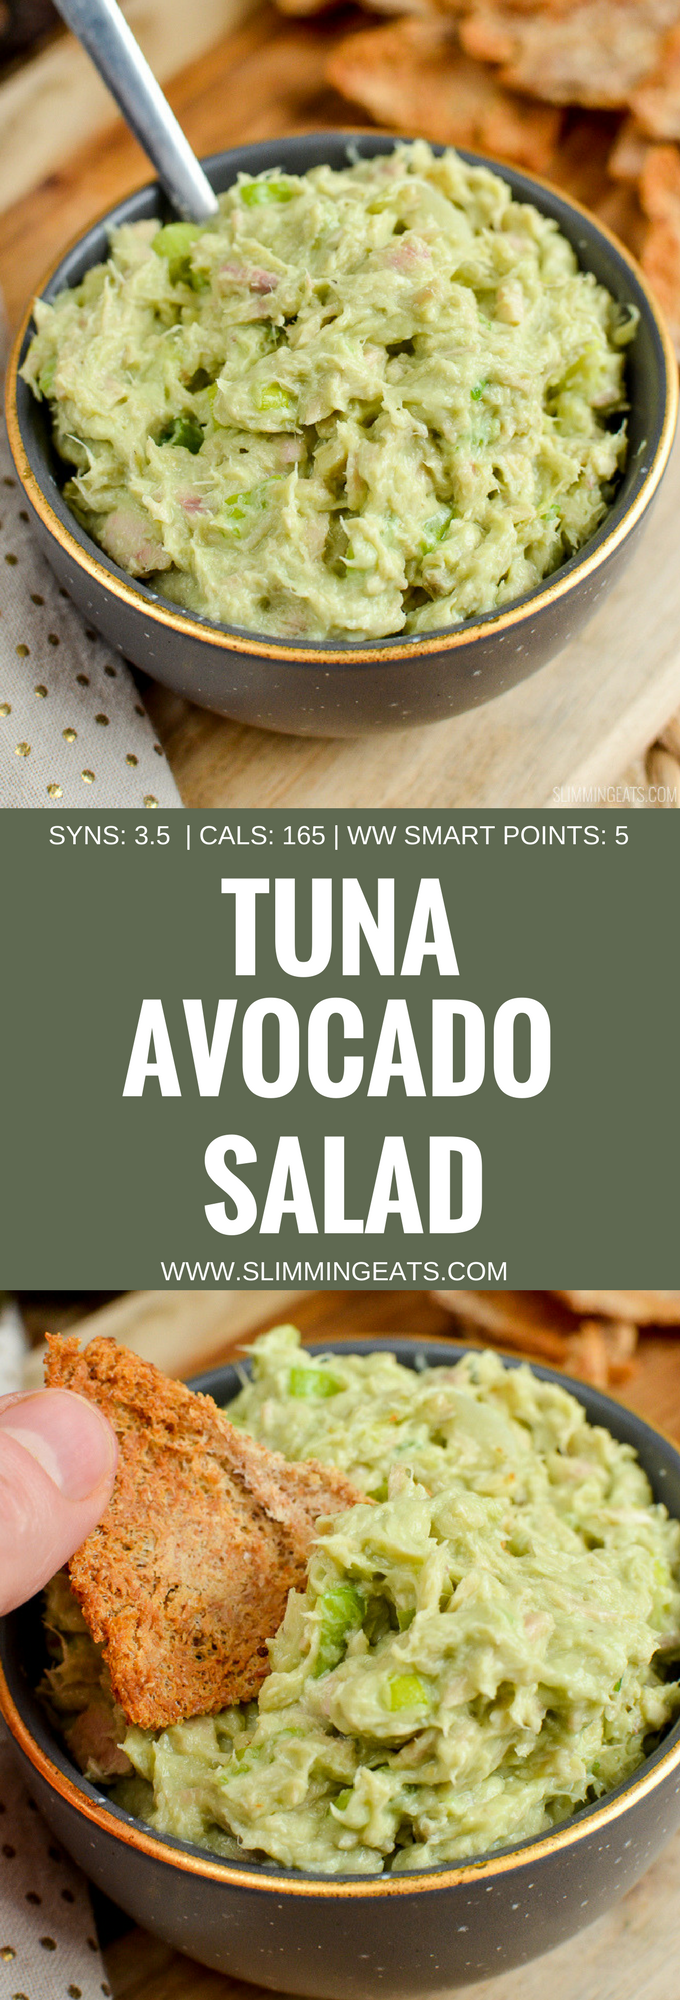 Slimming Eats Tuna Avocado Salad - gluten free, Slimming World and Weight Watchers friendly